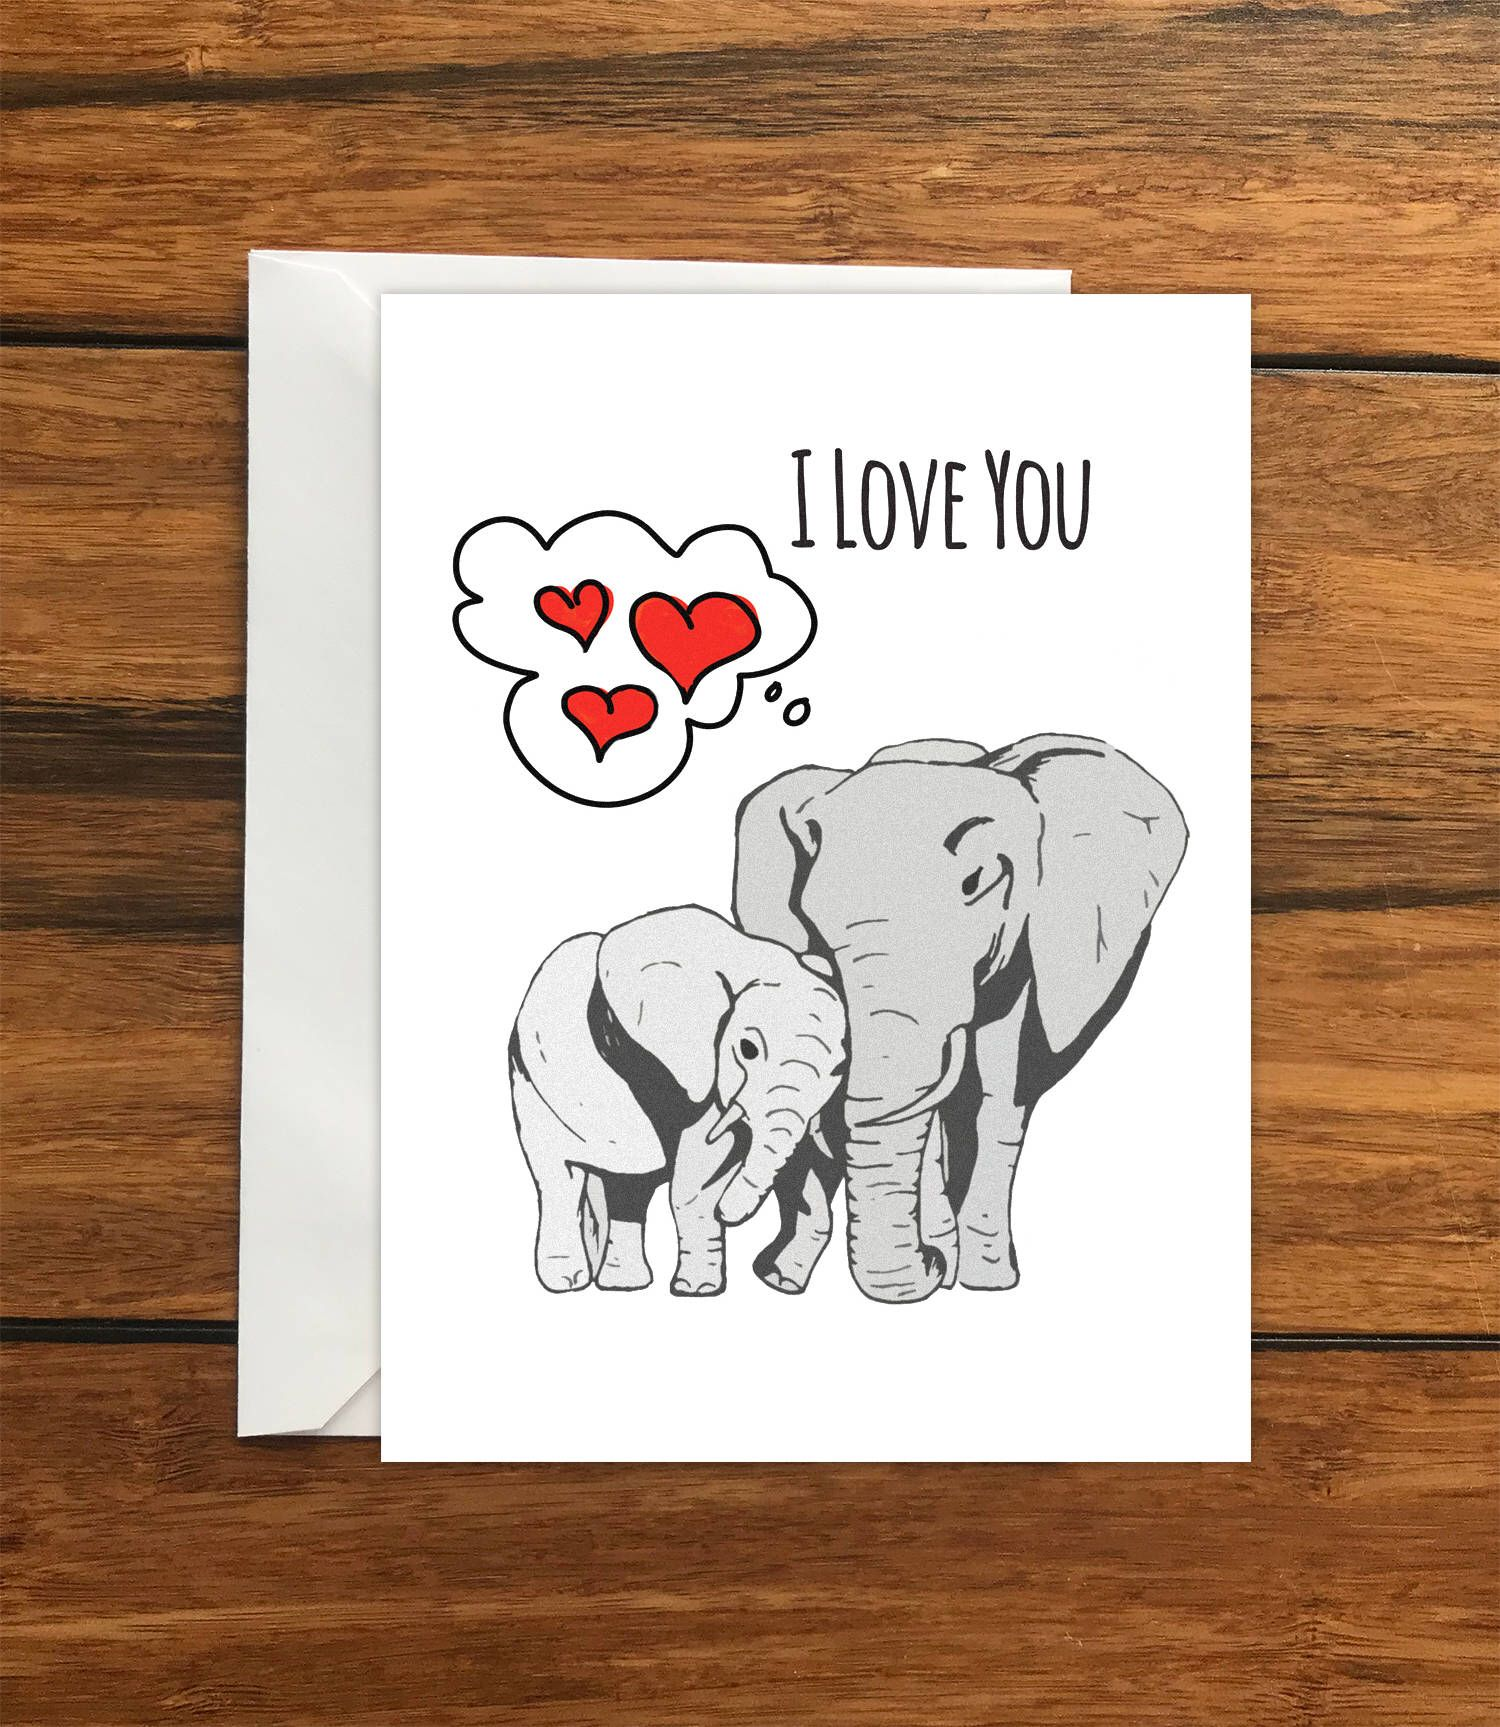 I Love You Elephants Greeting Card A6 One Card And Envelope